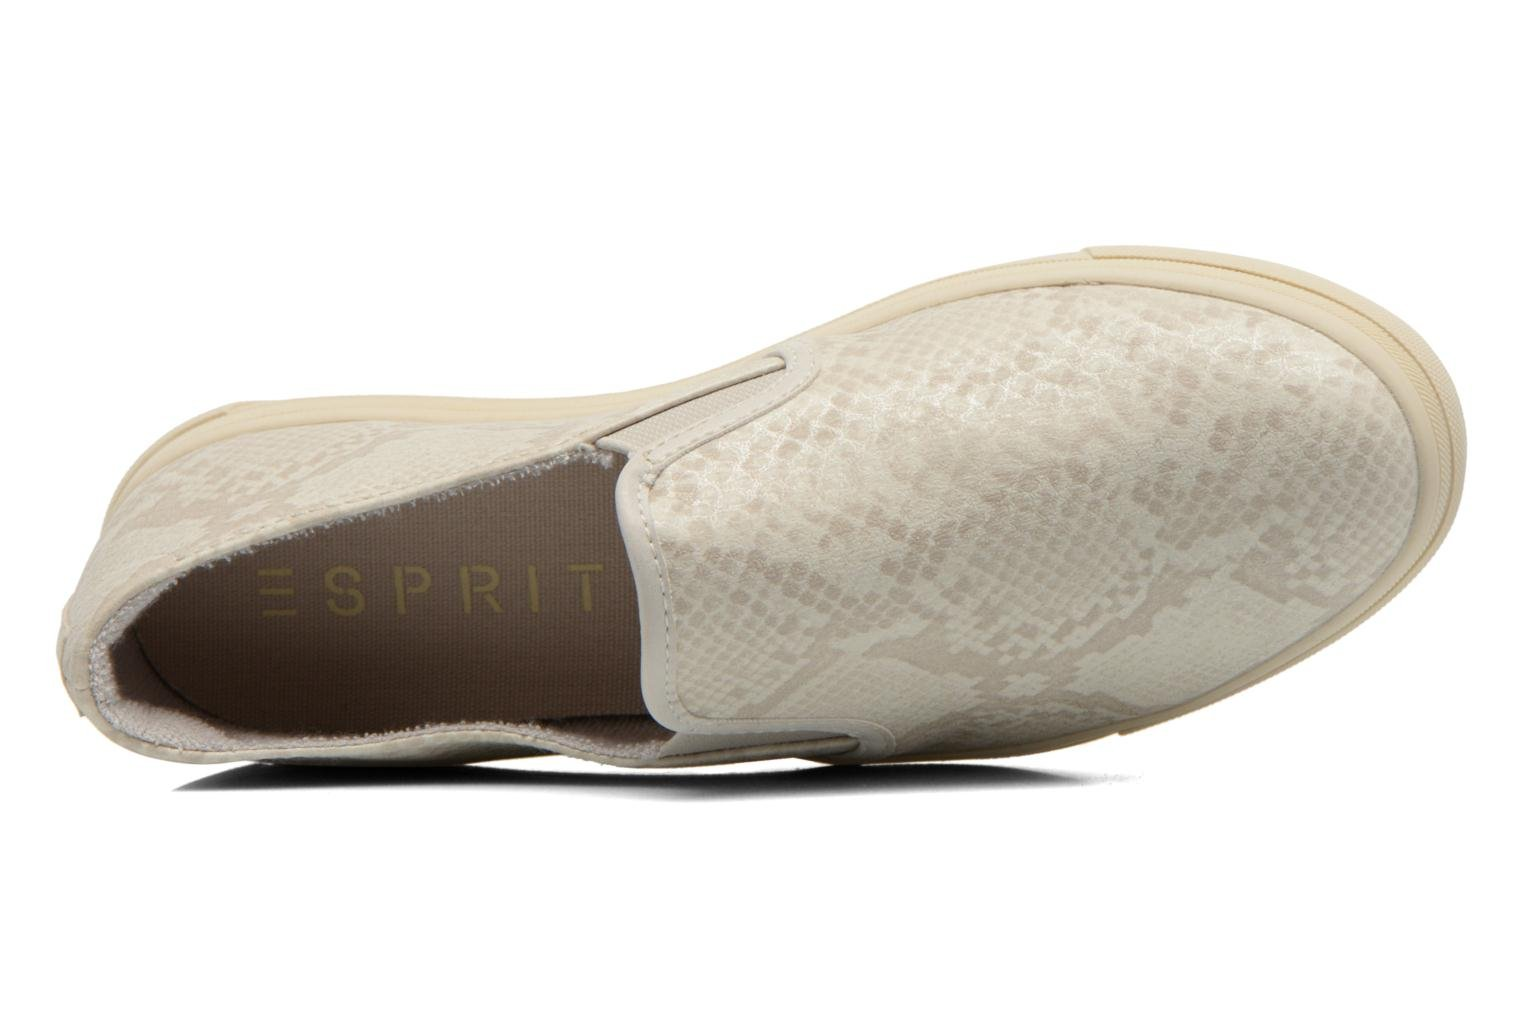 Trainers Esprit Yendis Slip on 009 Beige view from the left